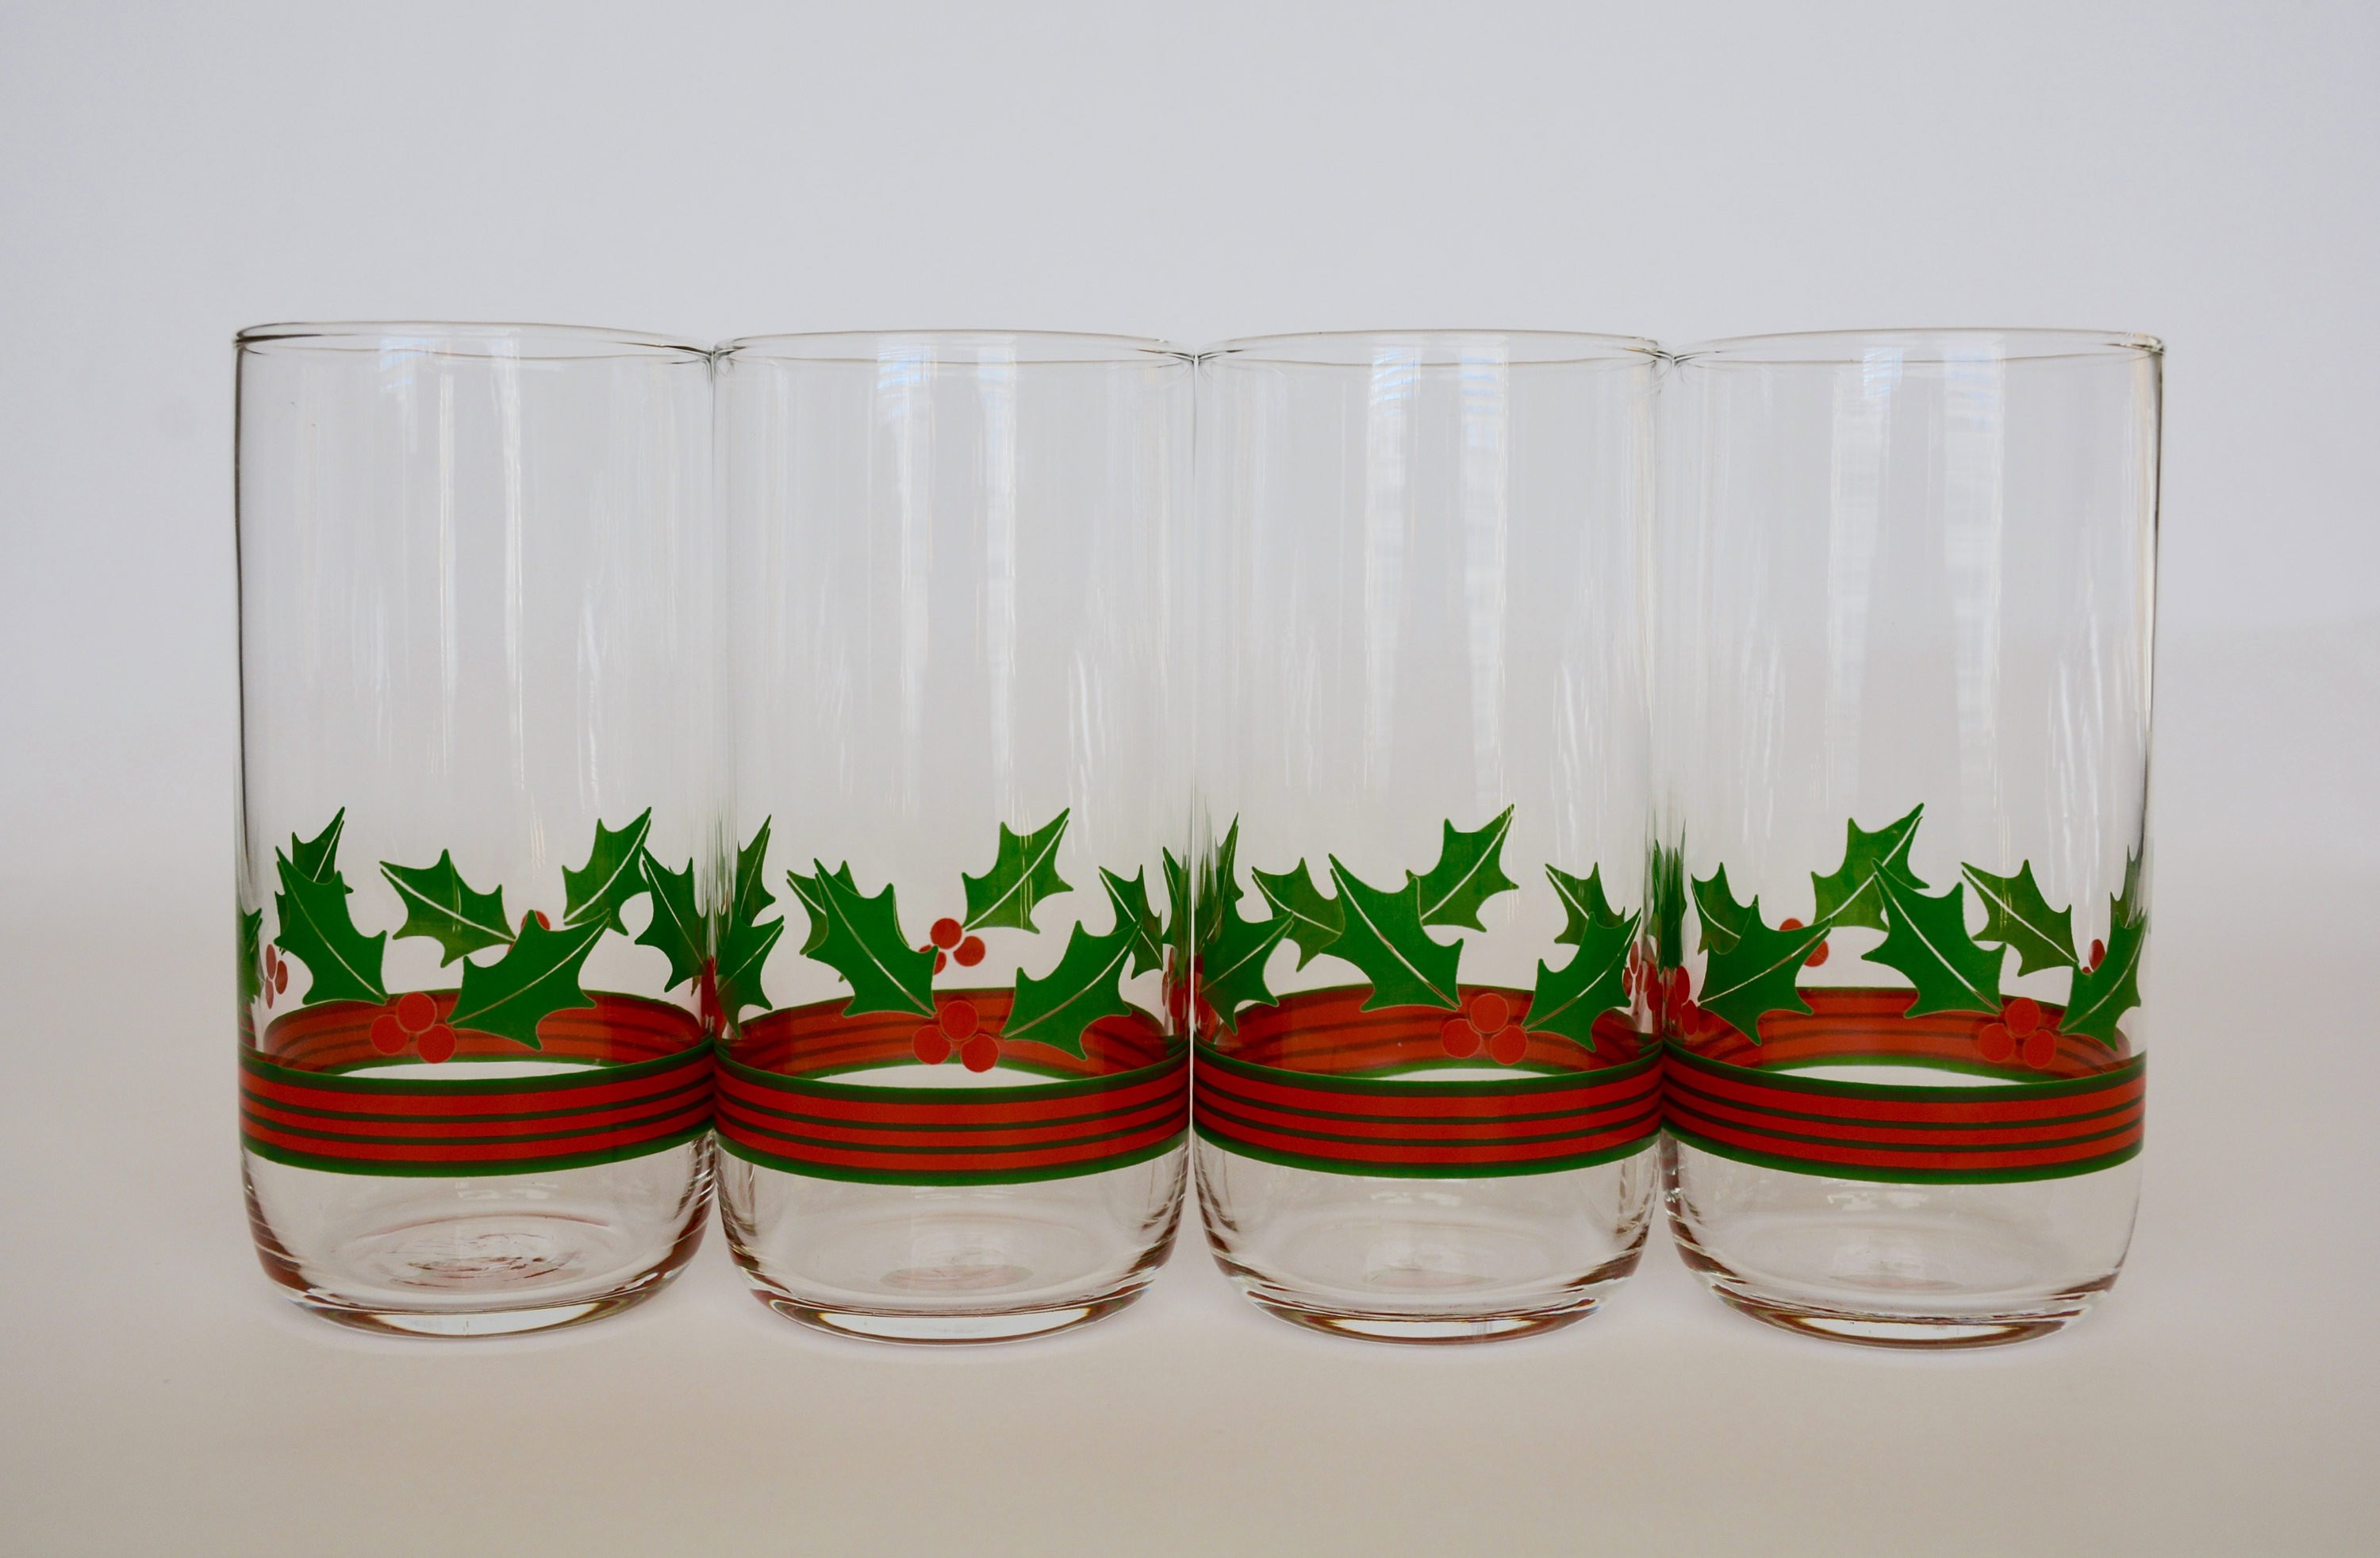 Libbey Glass Vases Of Vintage Libbey Holly and Berries Glasses Holly Berries Etsy with Regard to Image 0